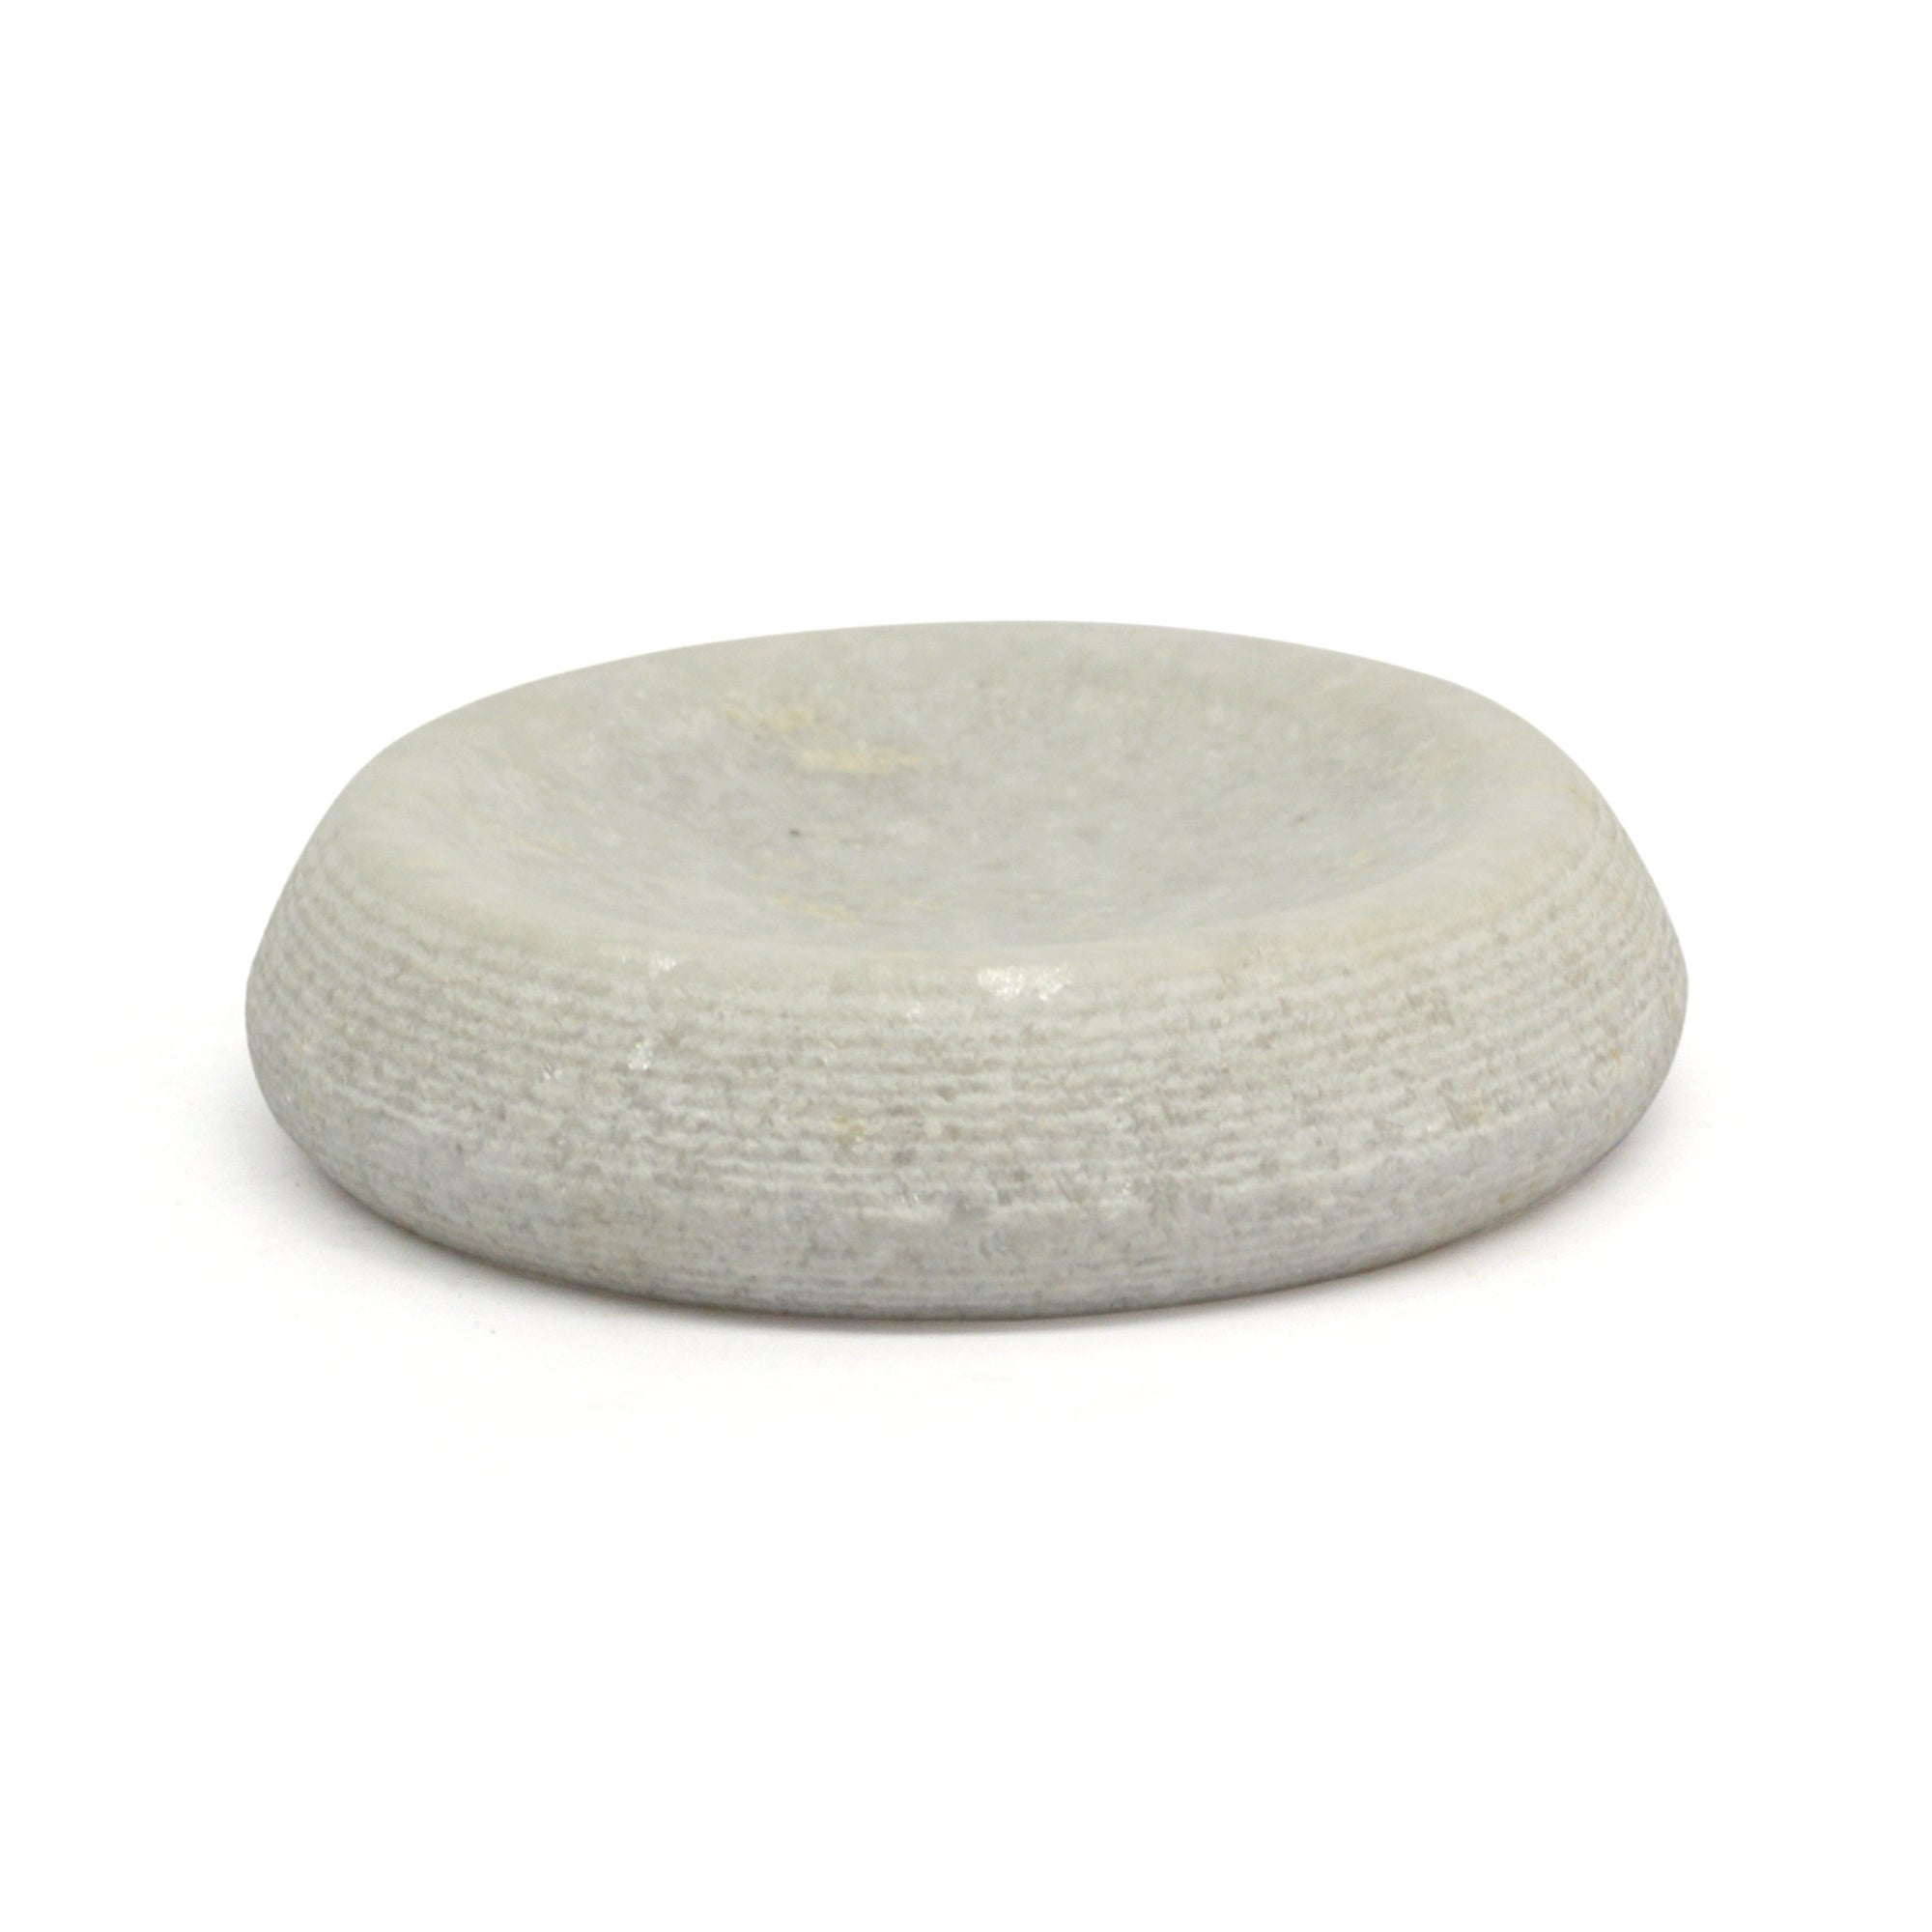 Dorma Richmond Marble Soap Dish